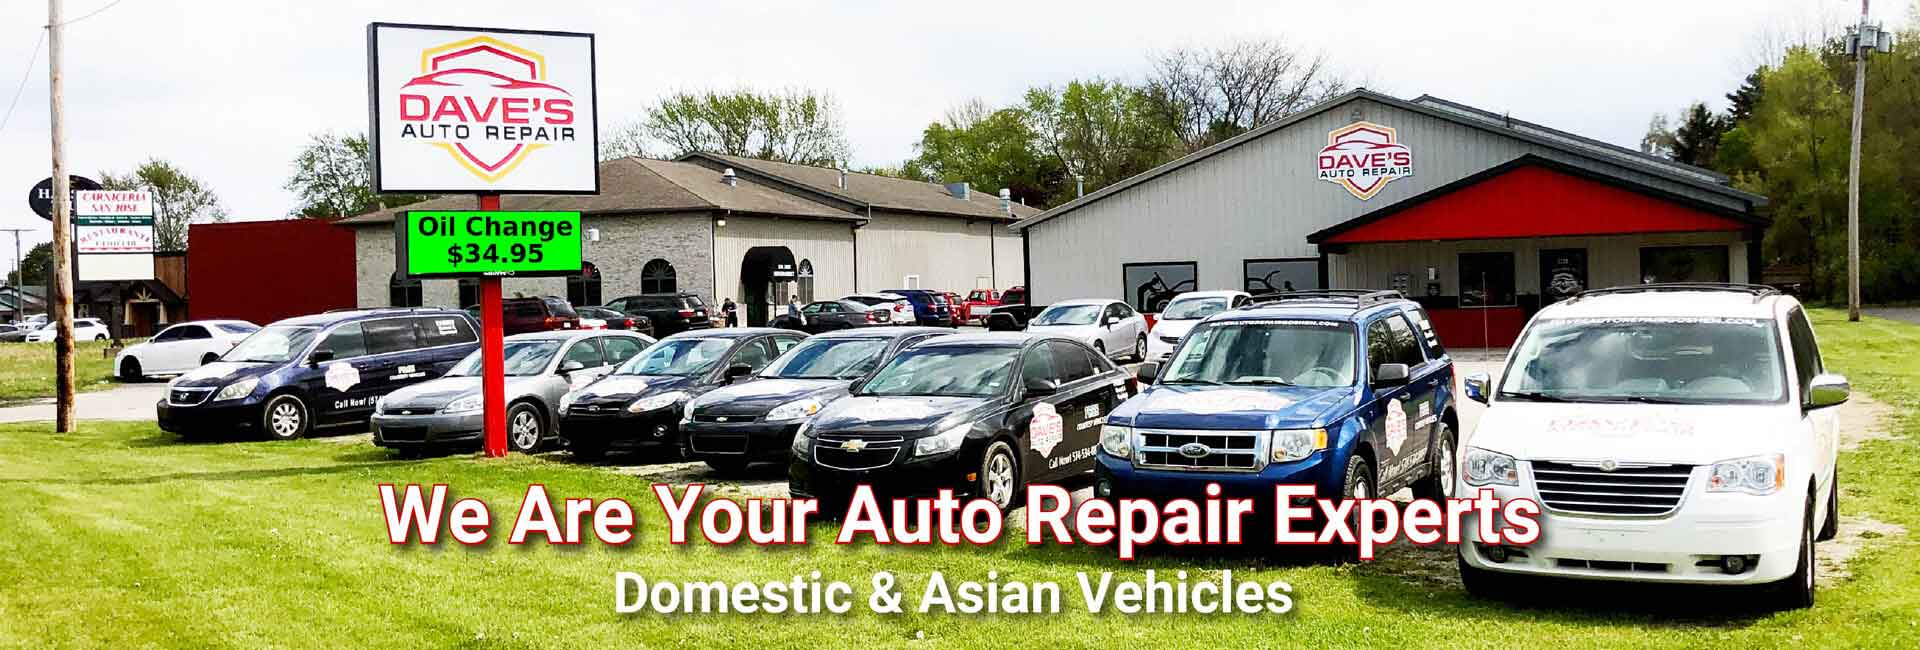 Auto Repair Experts, Domestic and Asian Vehicles